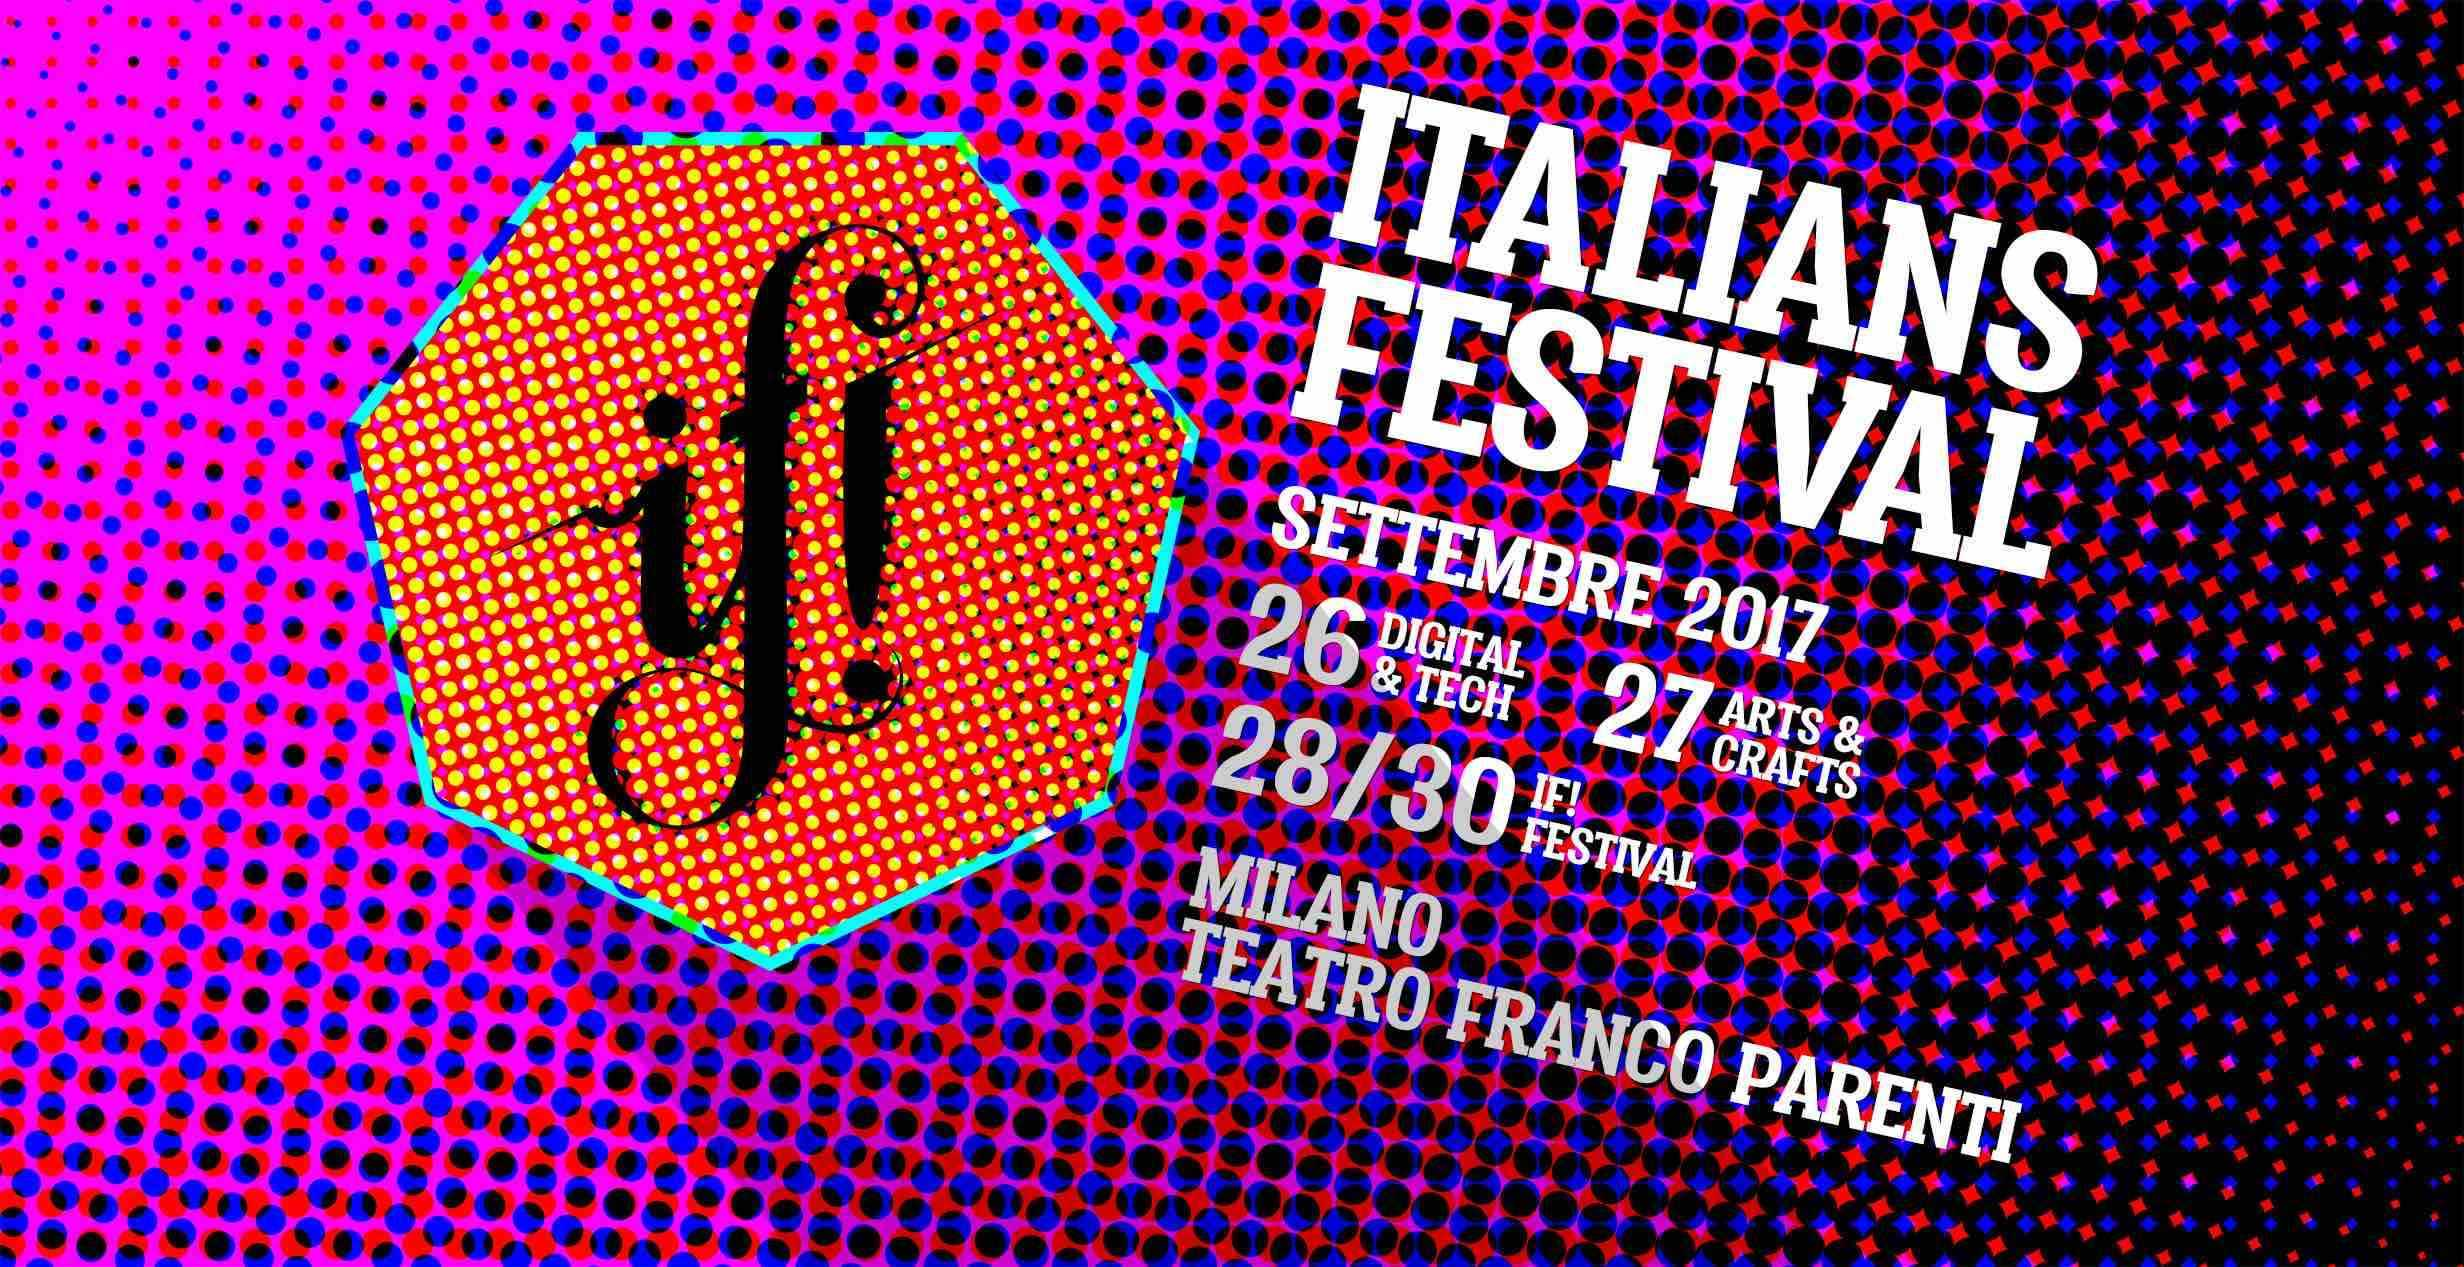 9 panel da non perdere a IF! Italians Festival